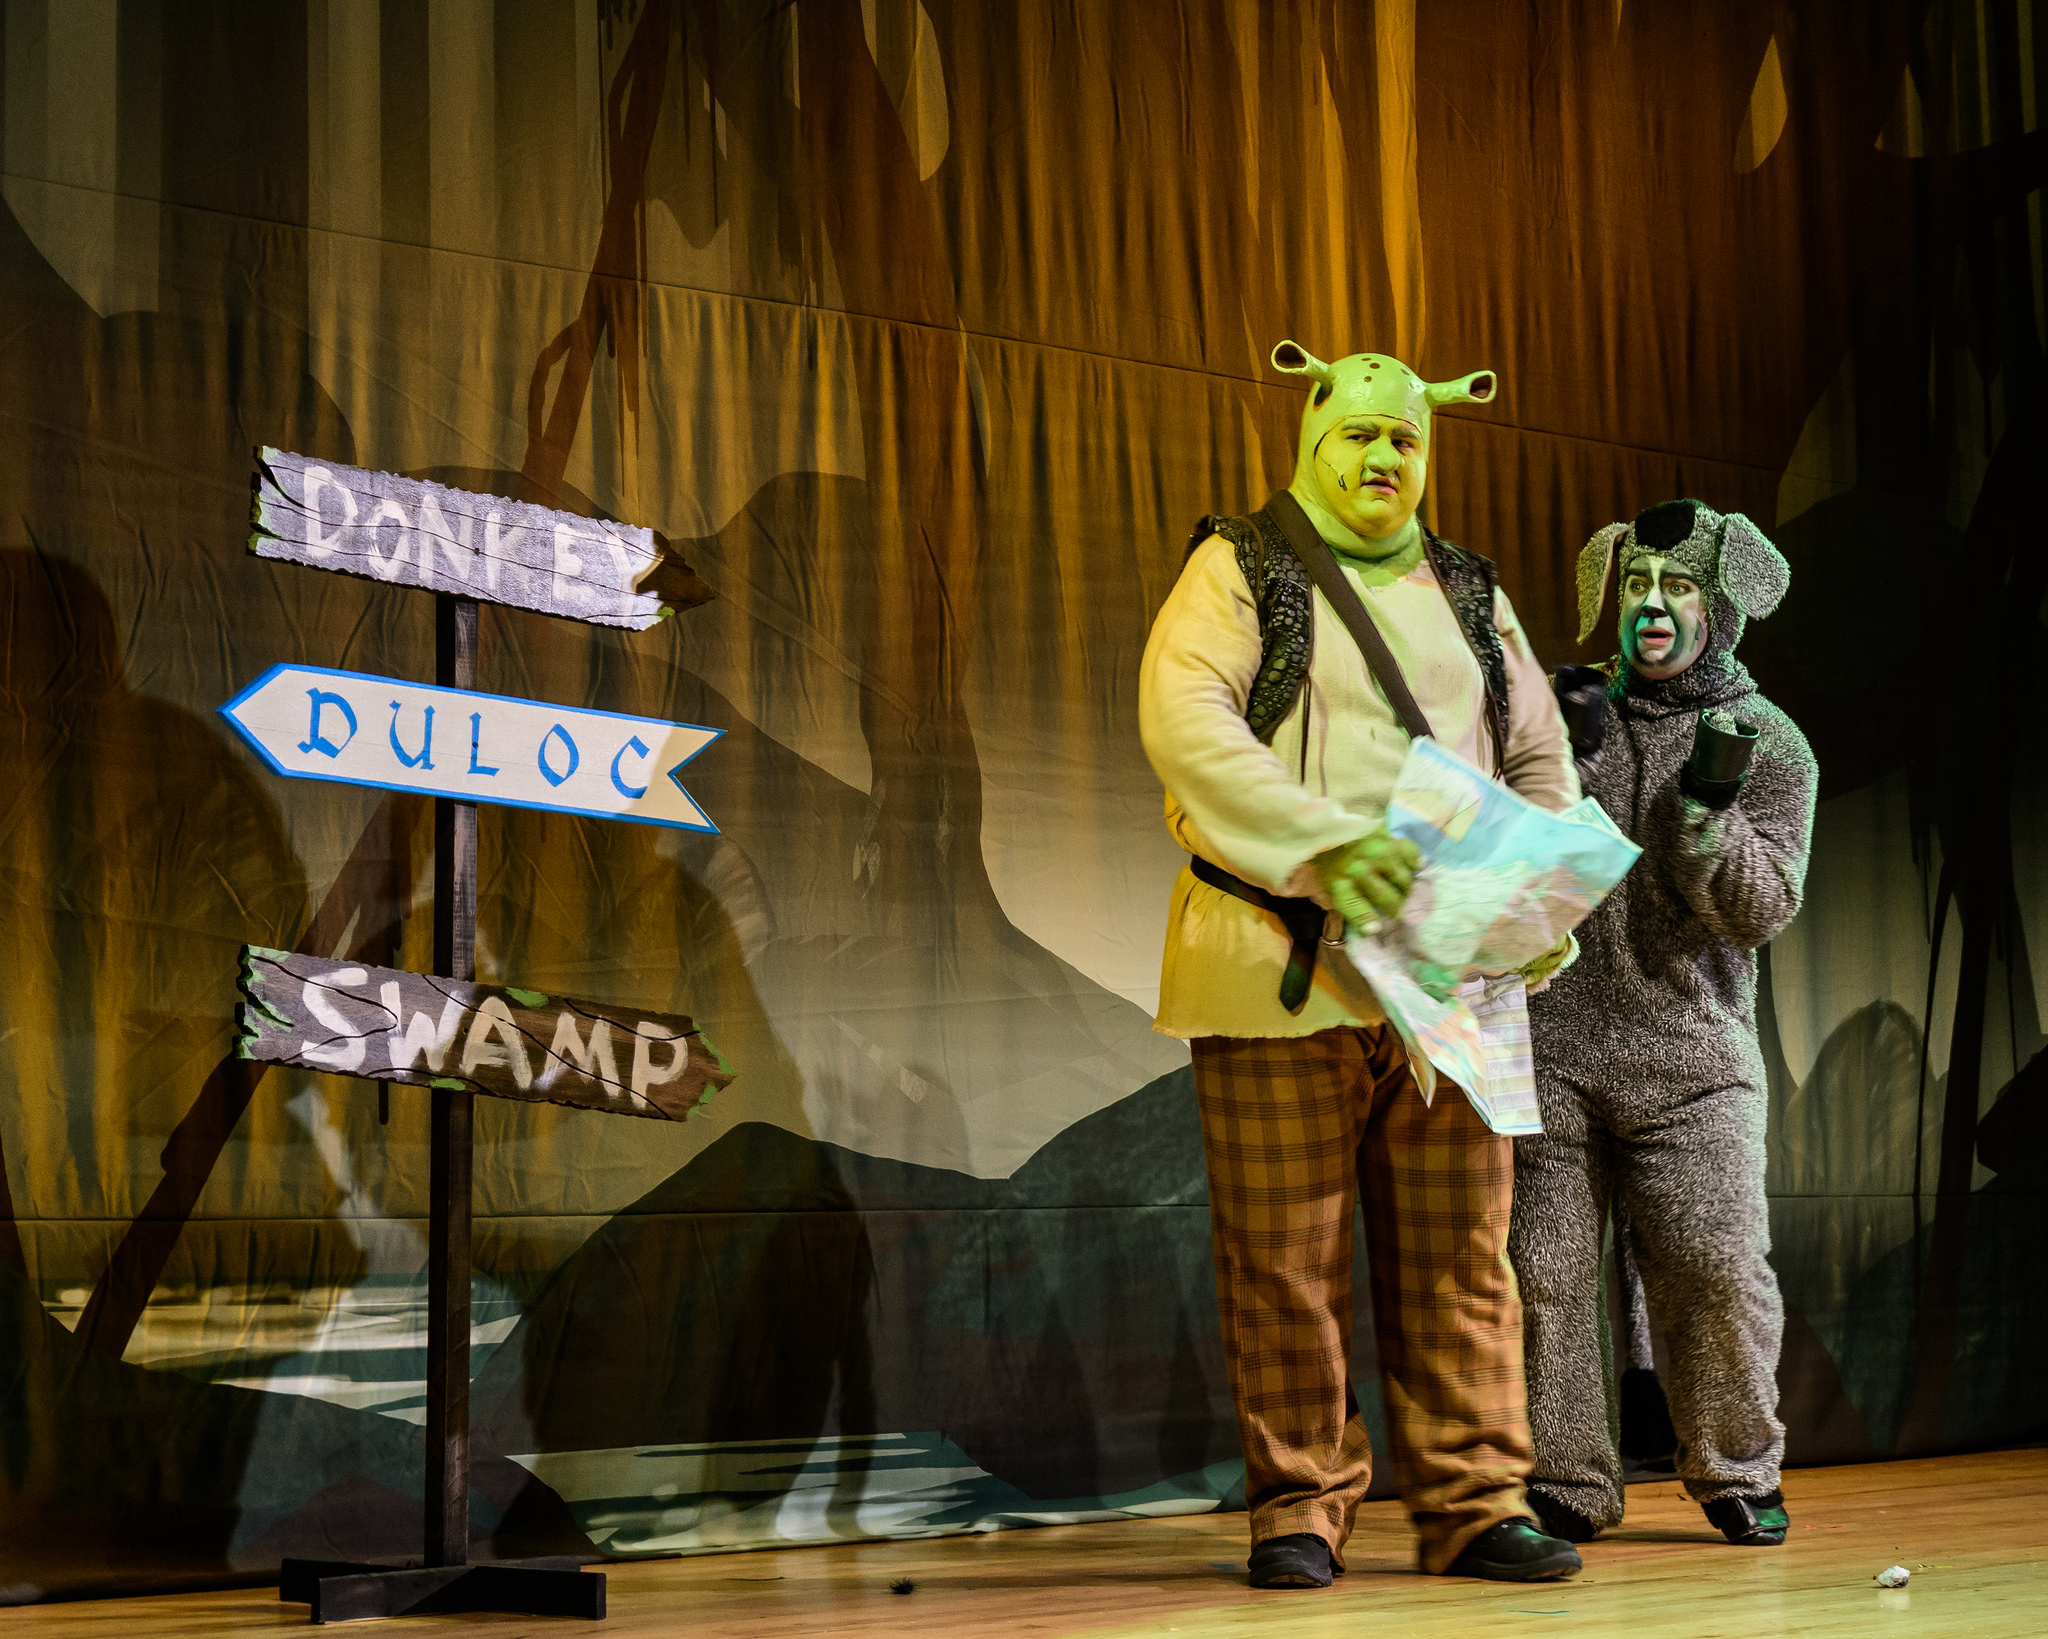 Shrek and Donkey on the way to Duloc